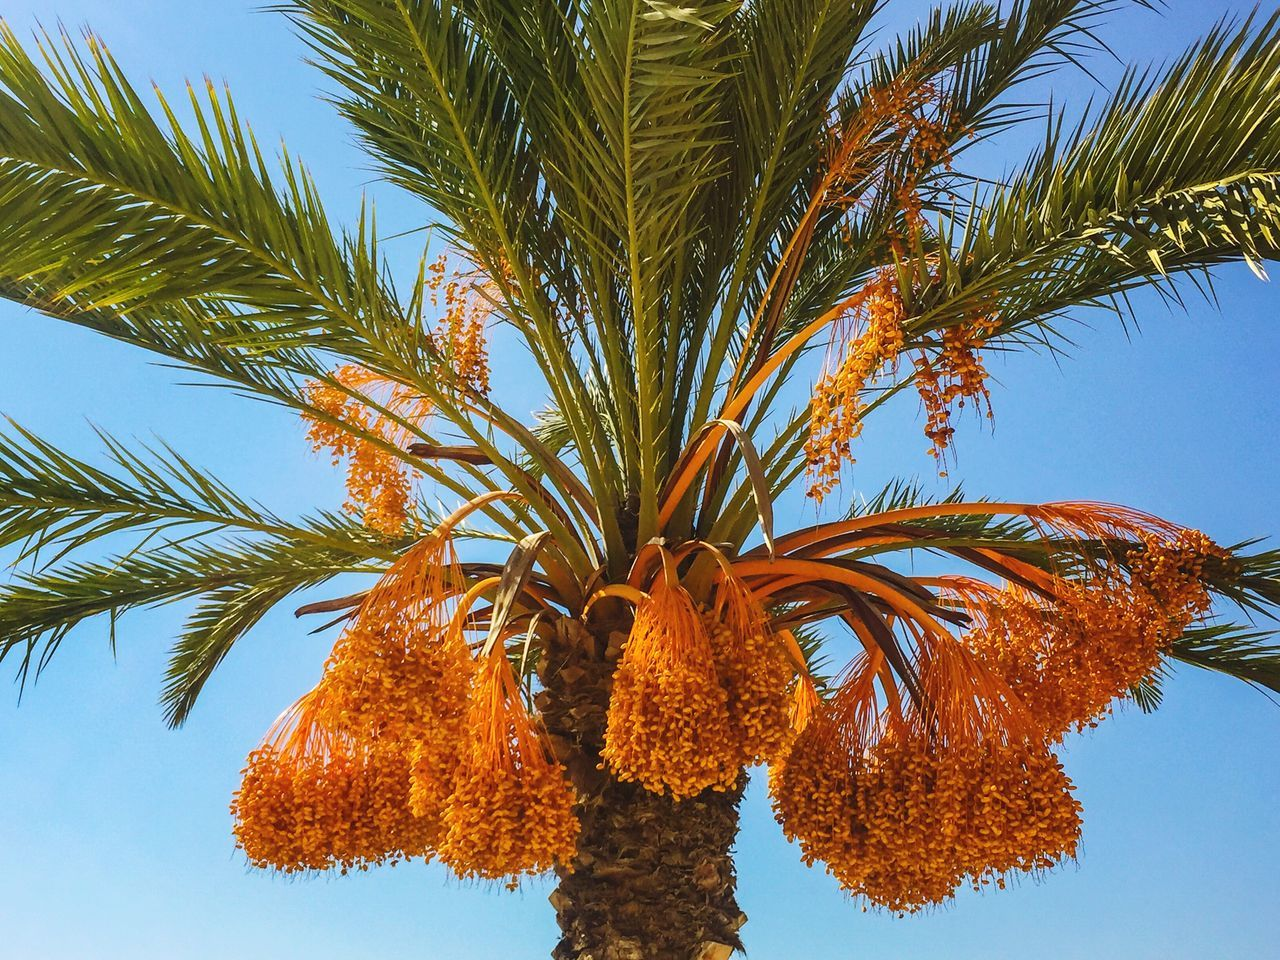 tree, low angle view, palm tree, growth, beauty in nature, day, outdoors, sky, nature, no people, leaf, clear sky, freshness, close-up